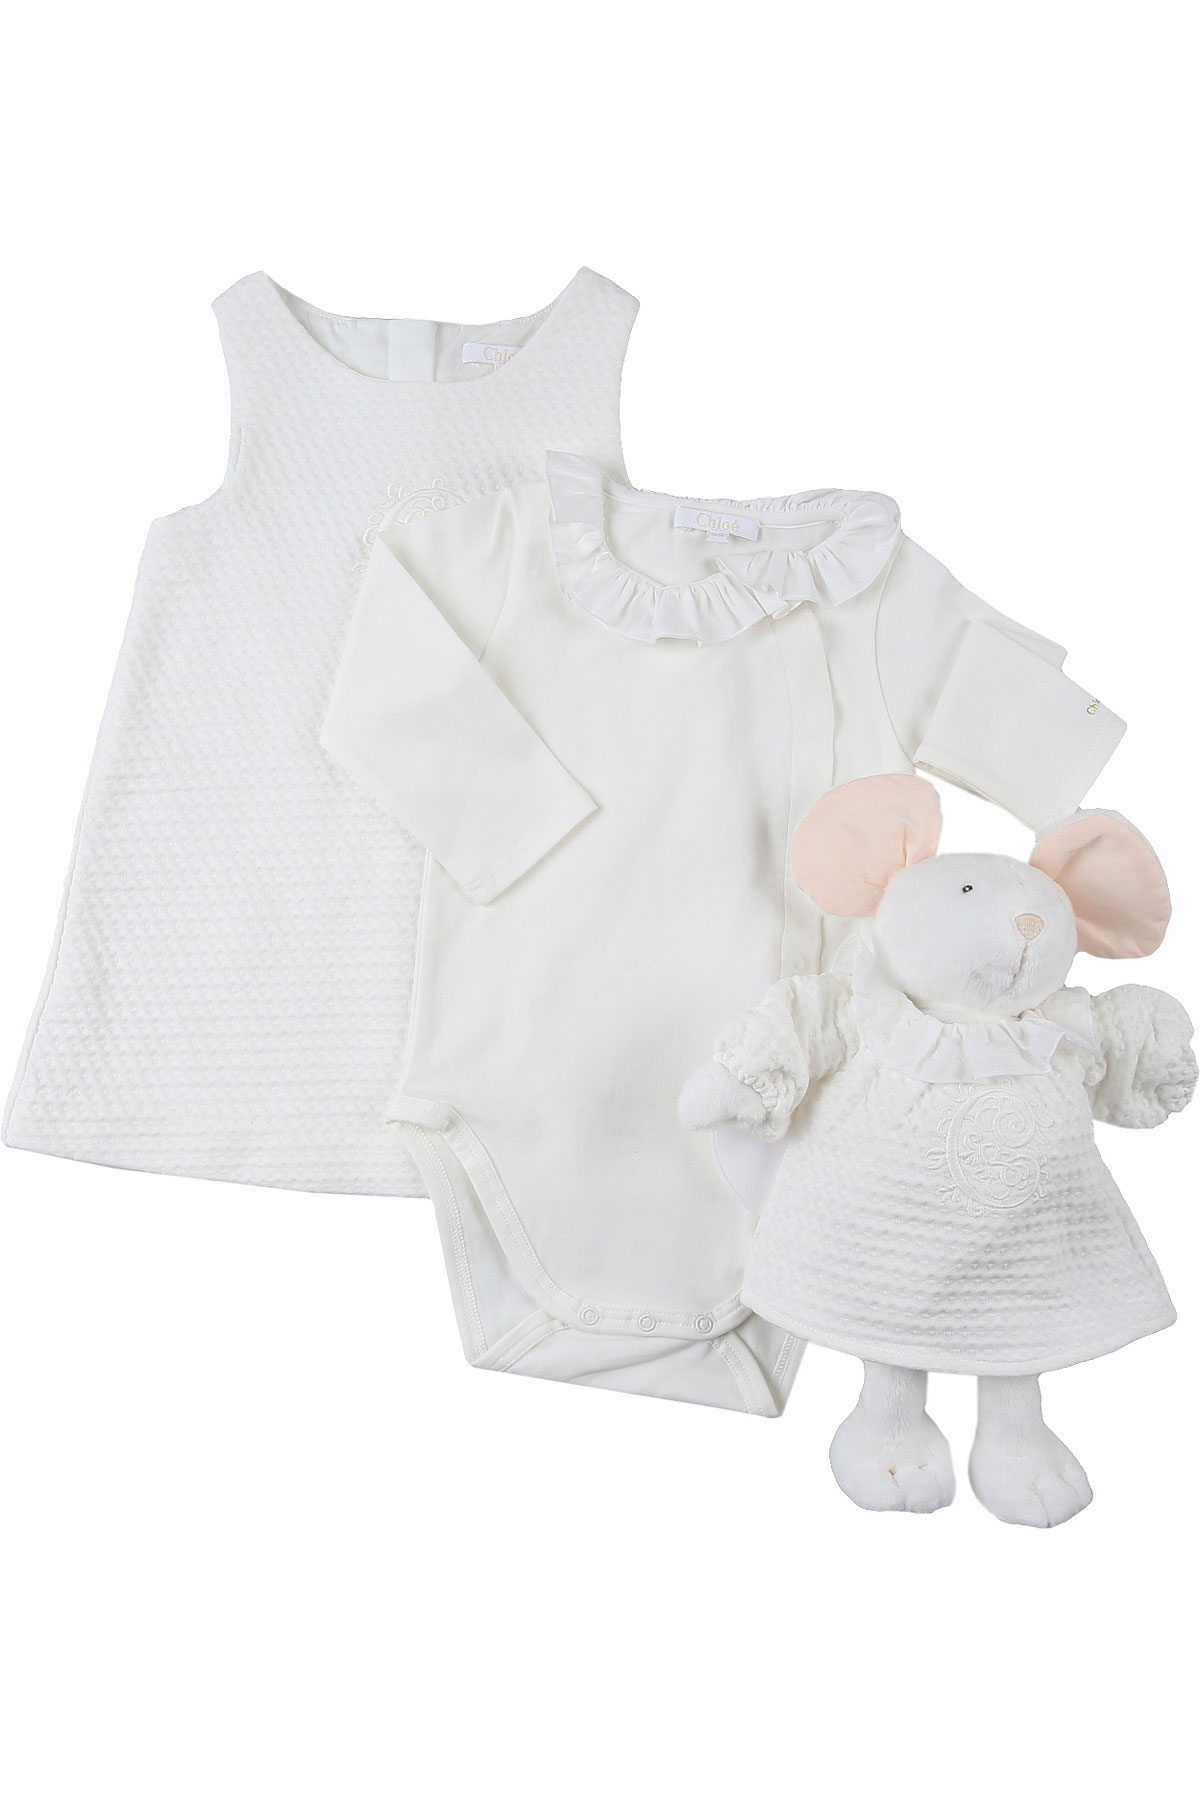 Chloe Baby Sets for Girls On Sale, White, Cotton, 2019, 12M 1M 3M 6M 9M